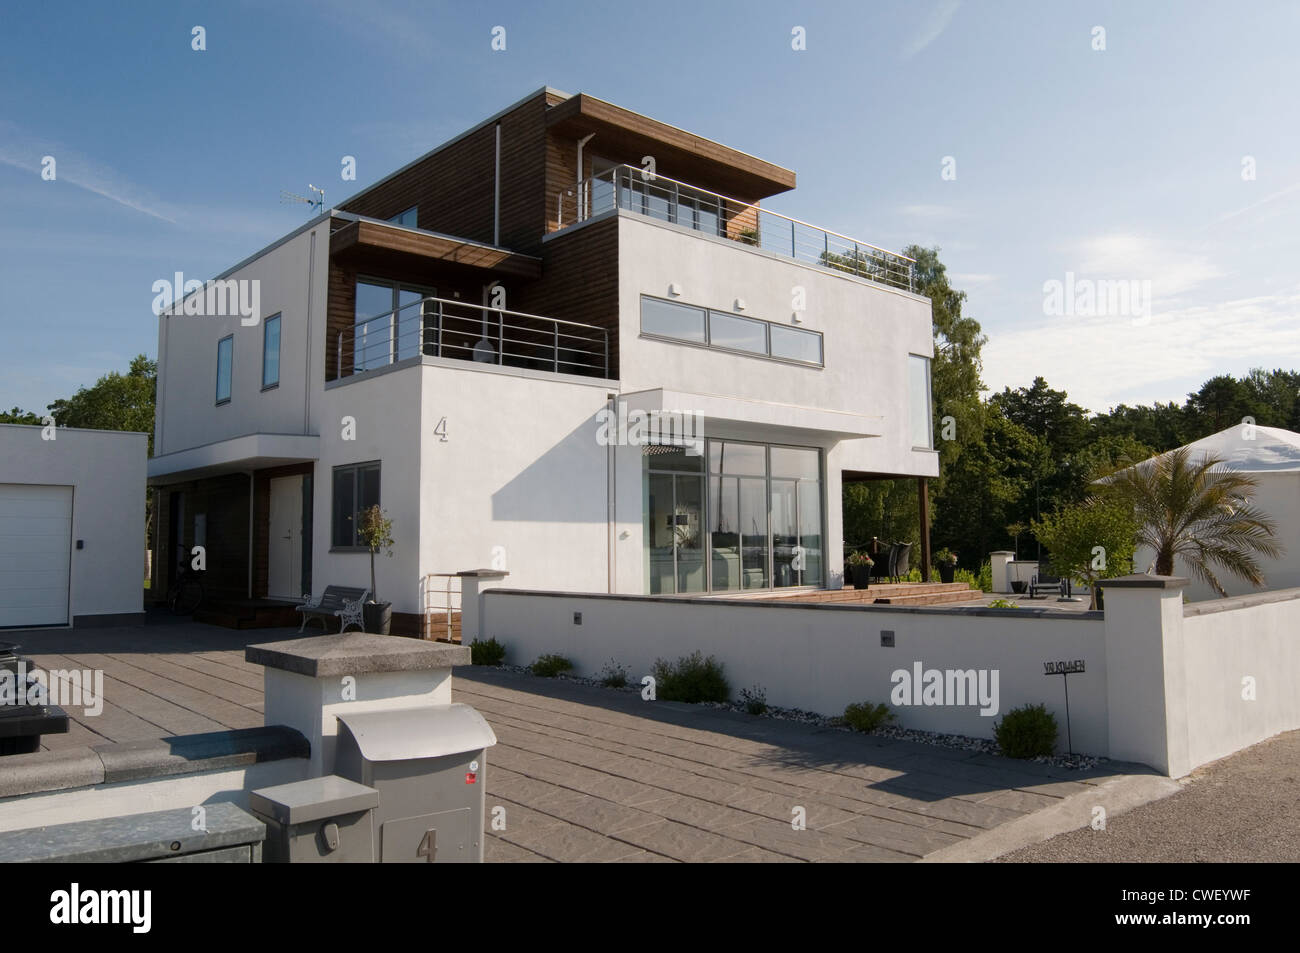 modern swedish house houses home homes minimalist building grand